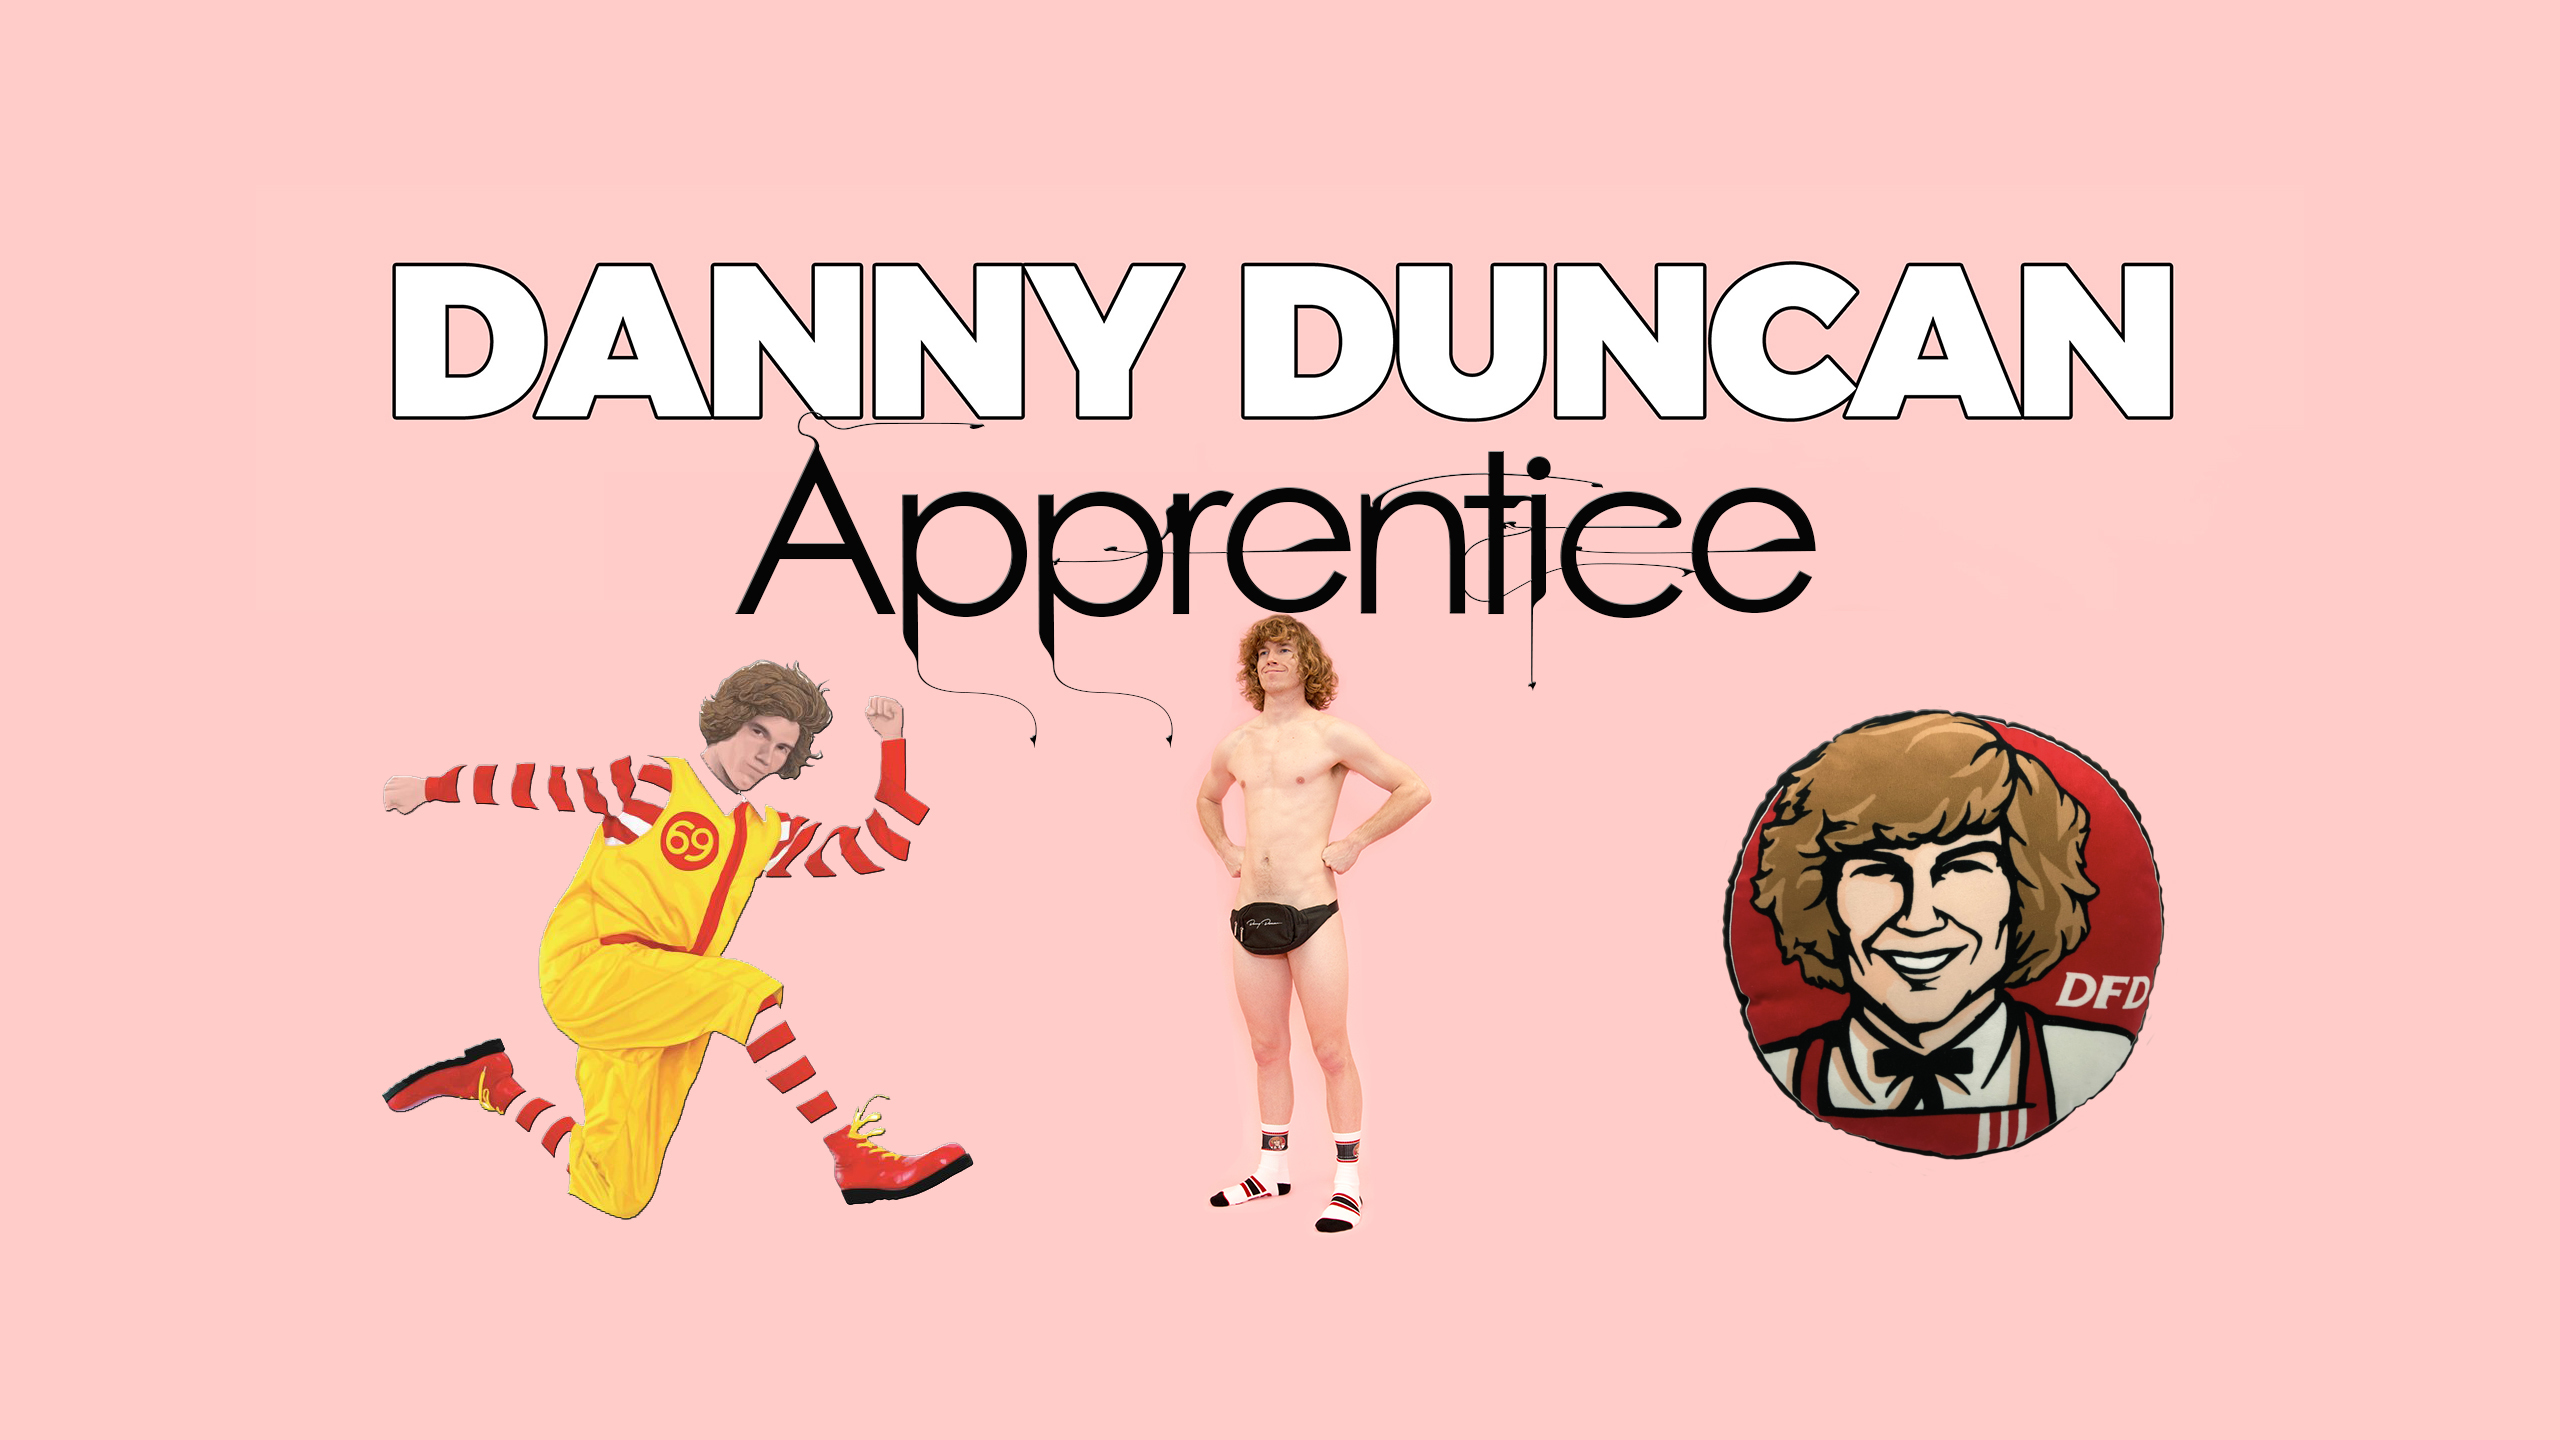 Danny Duncan Apprentice Contest Create Your Own Contests